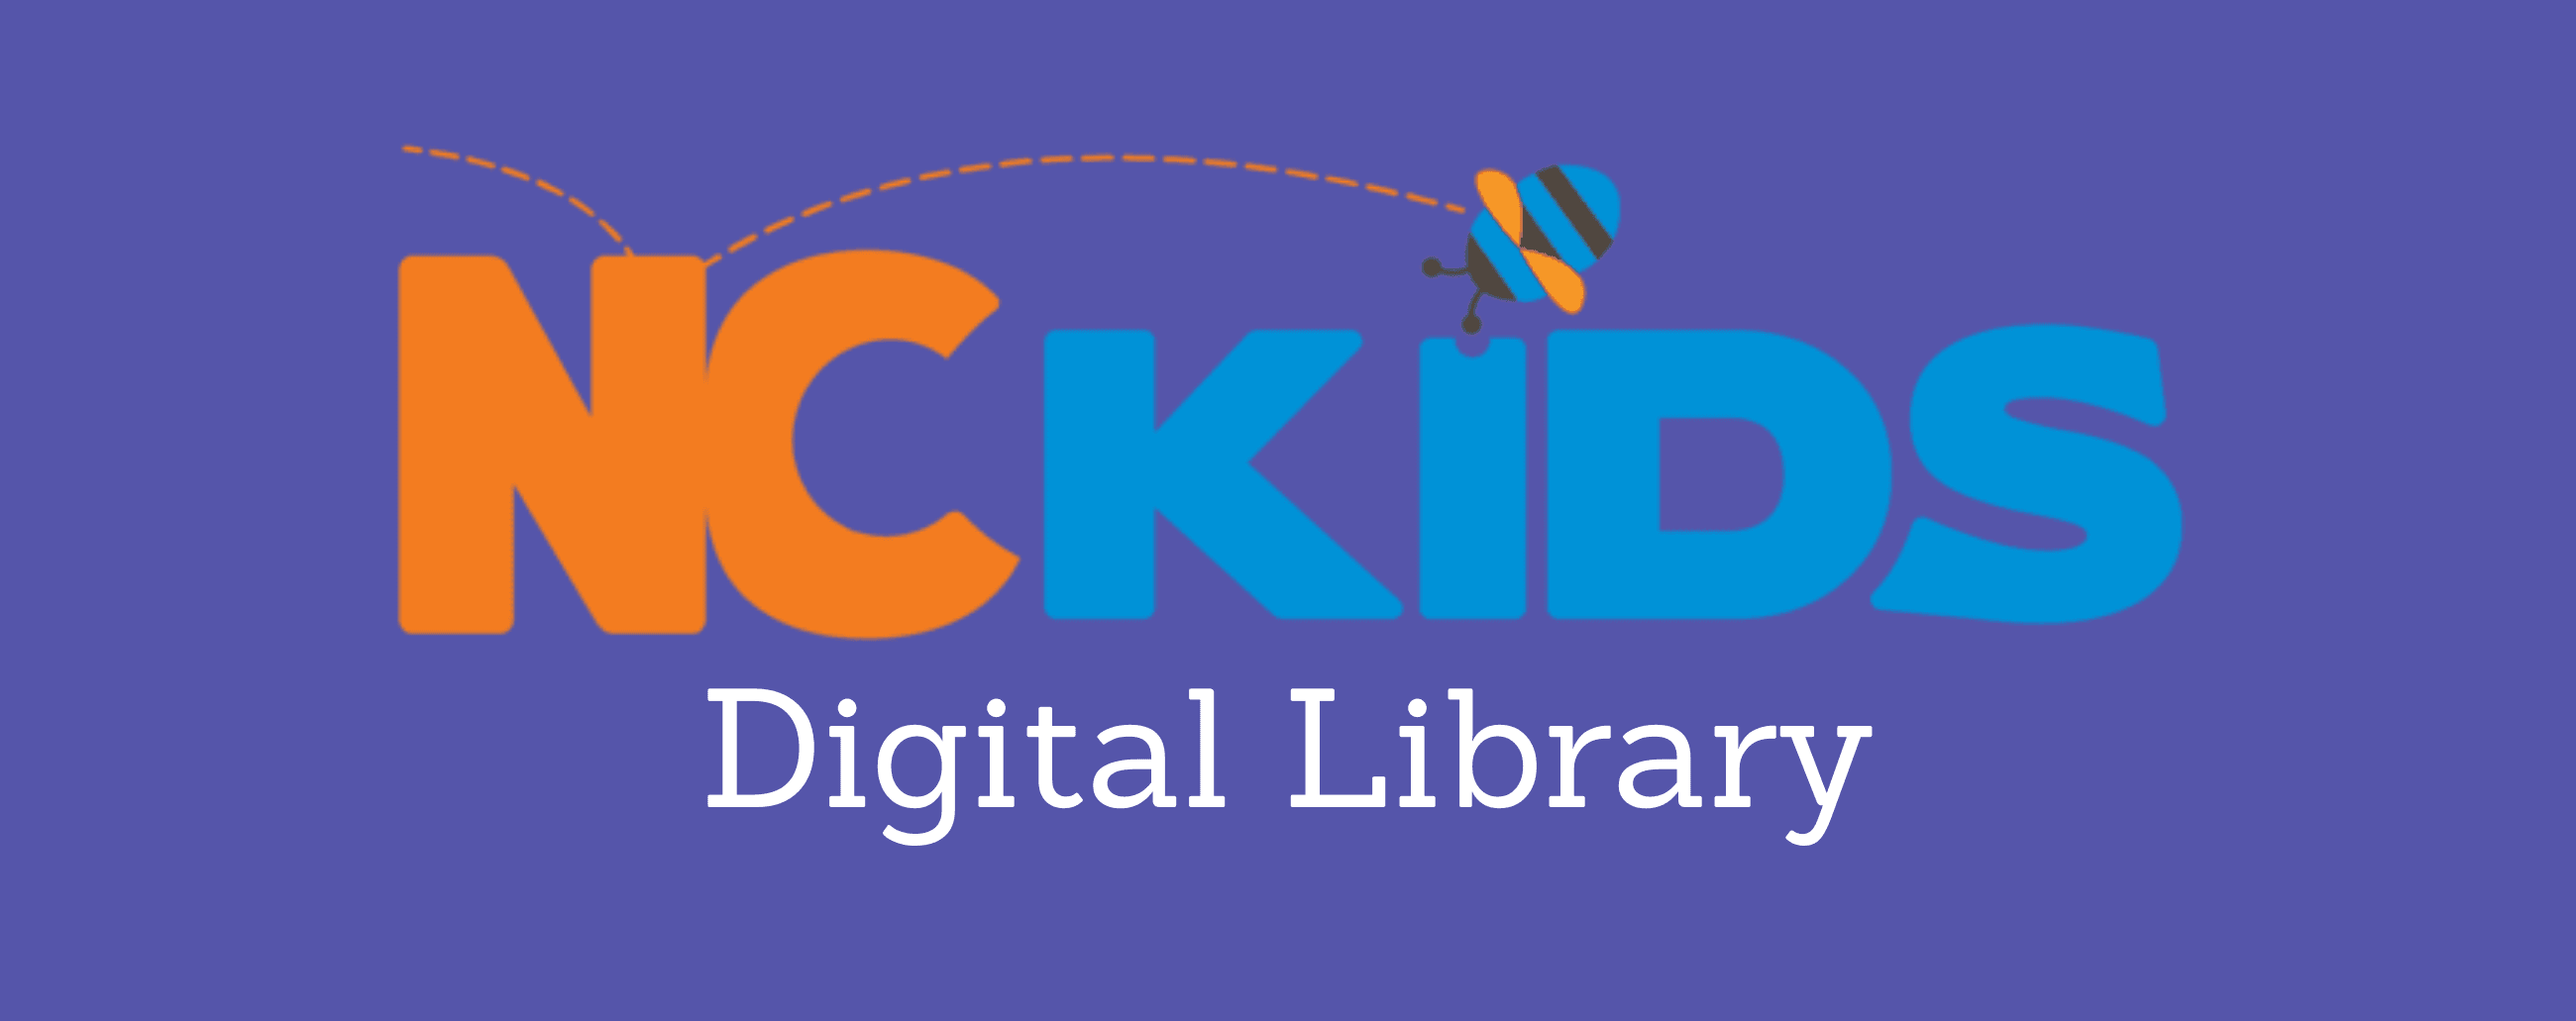 NC Kids Digital Library Opens in new window